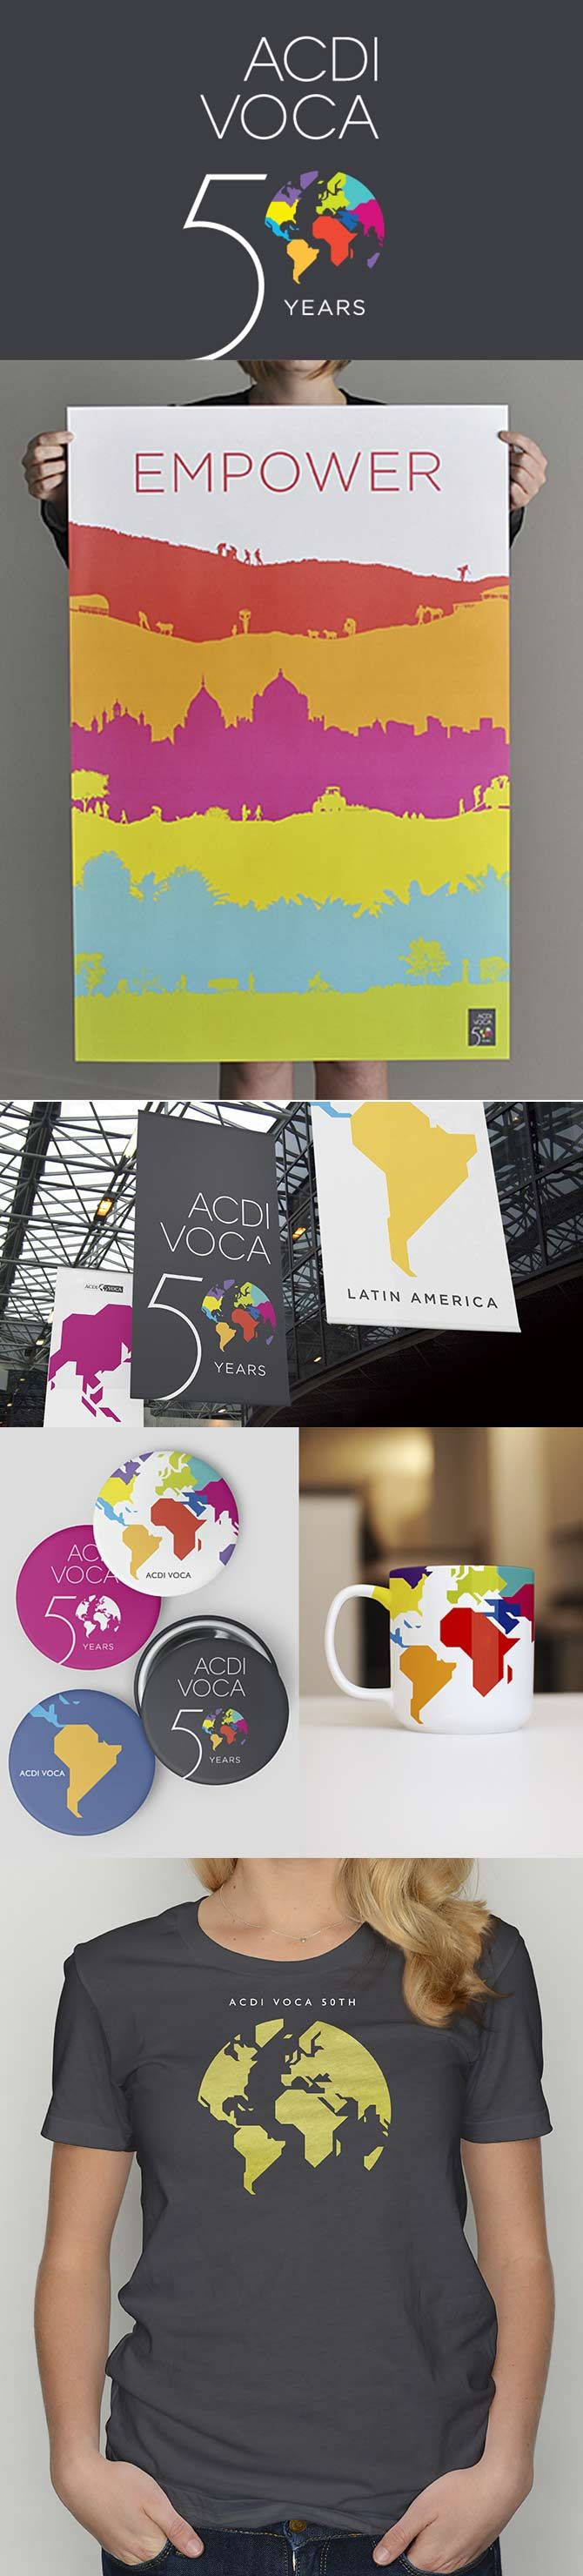 ACDI VOCA 50th Anniversary branding by Levine DC Interesting organisation to look into